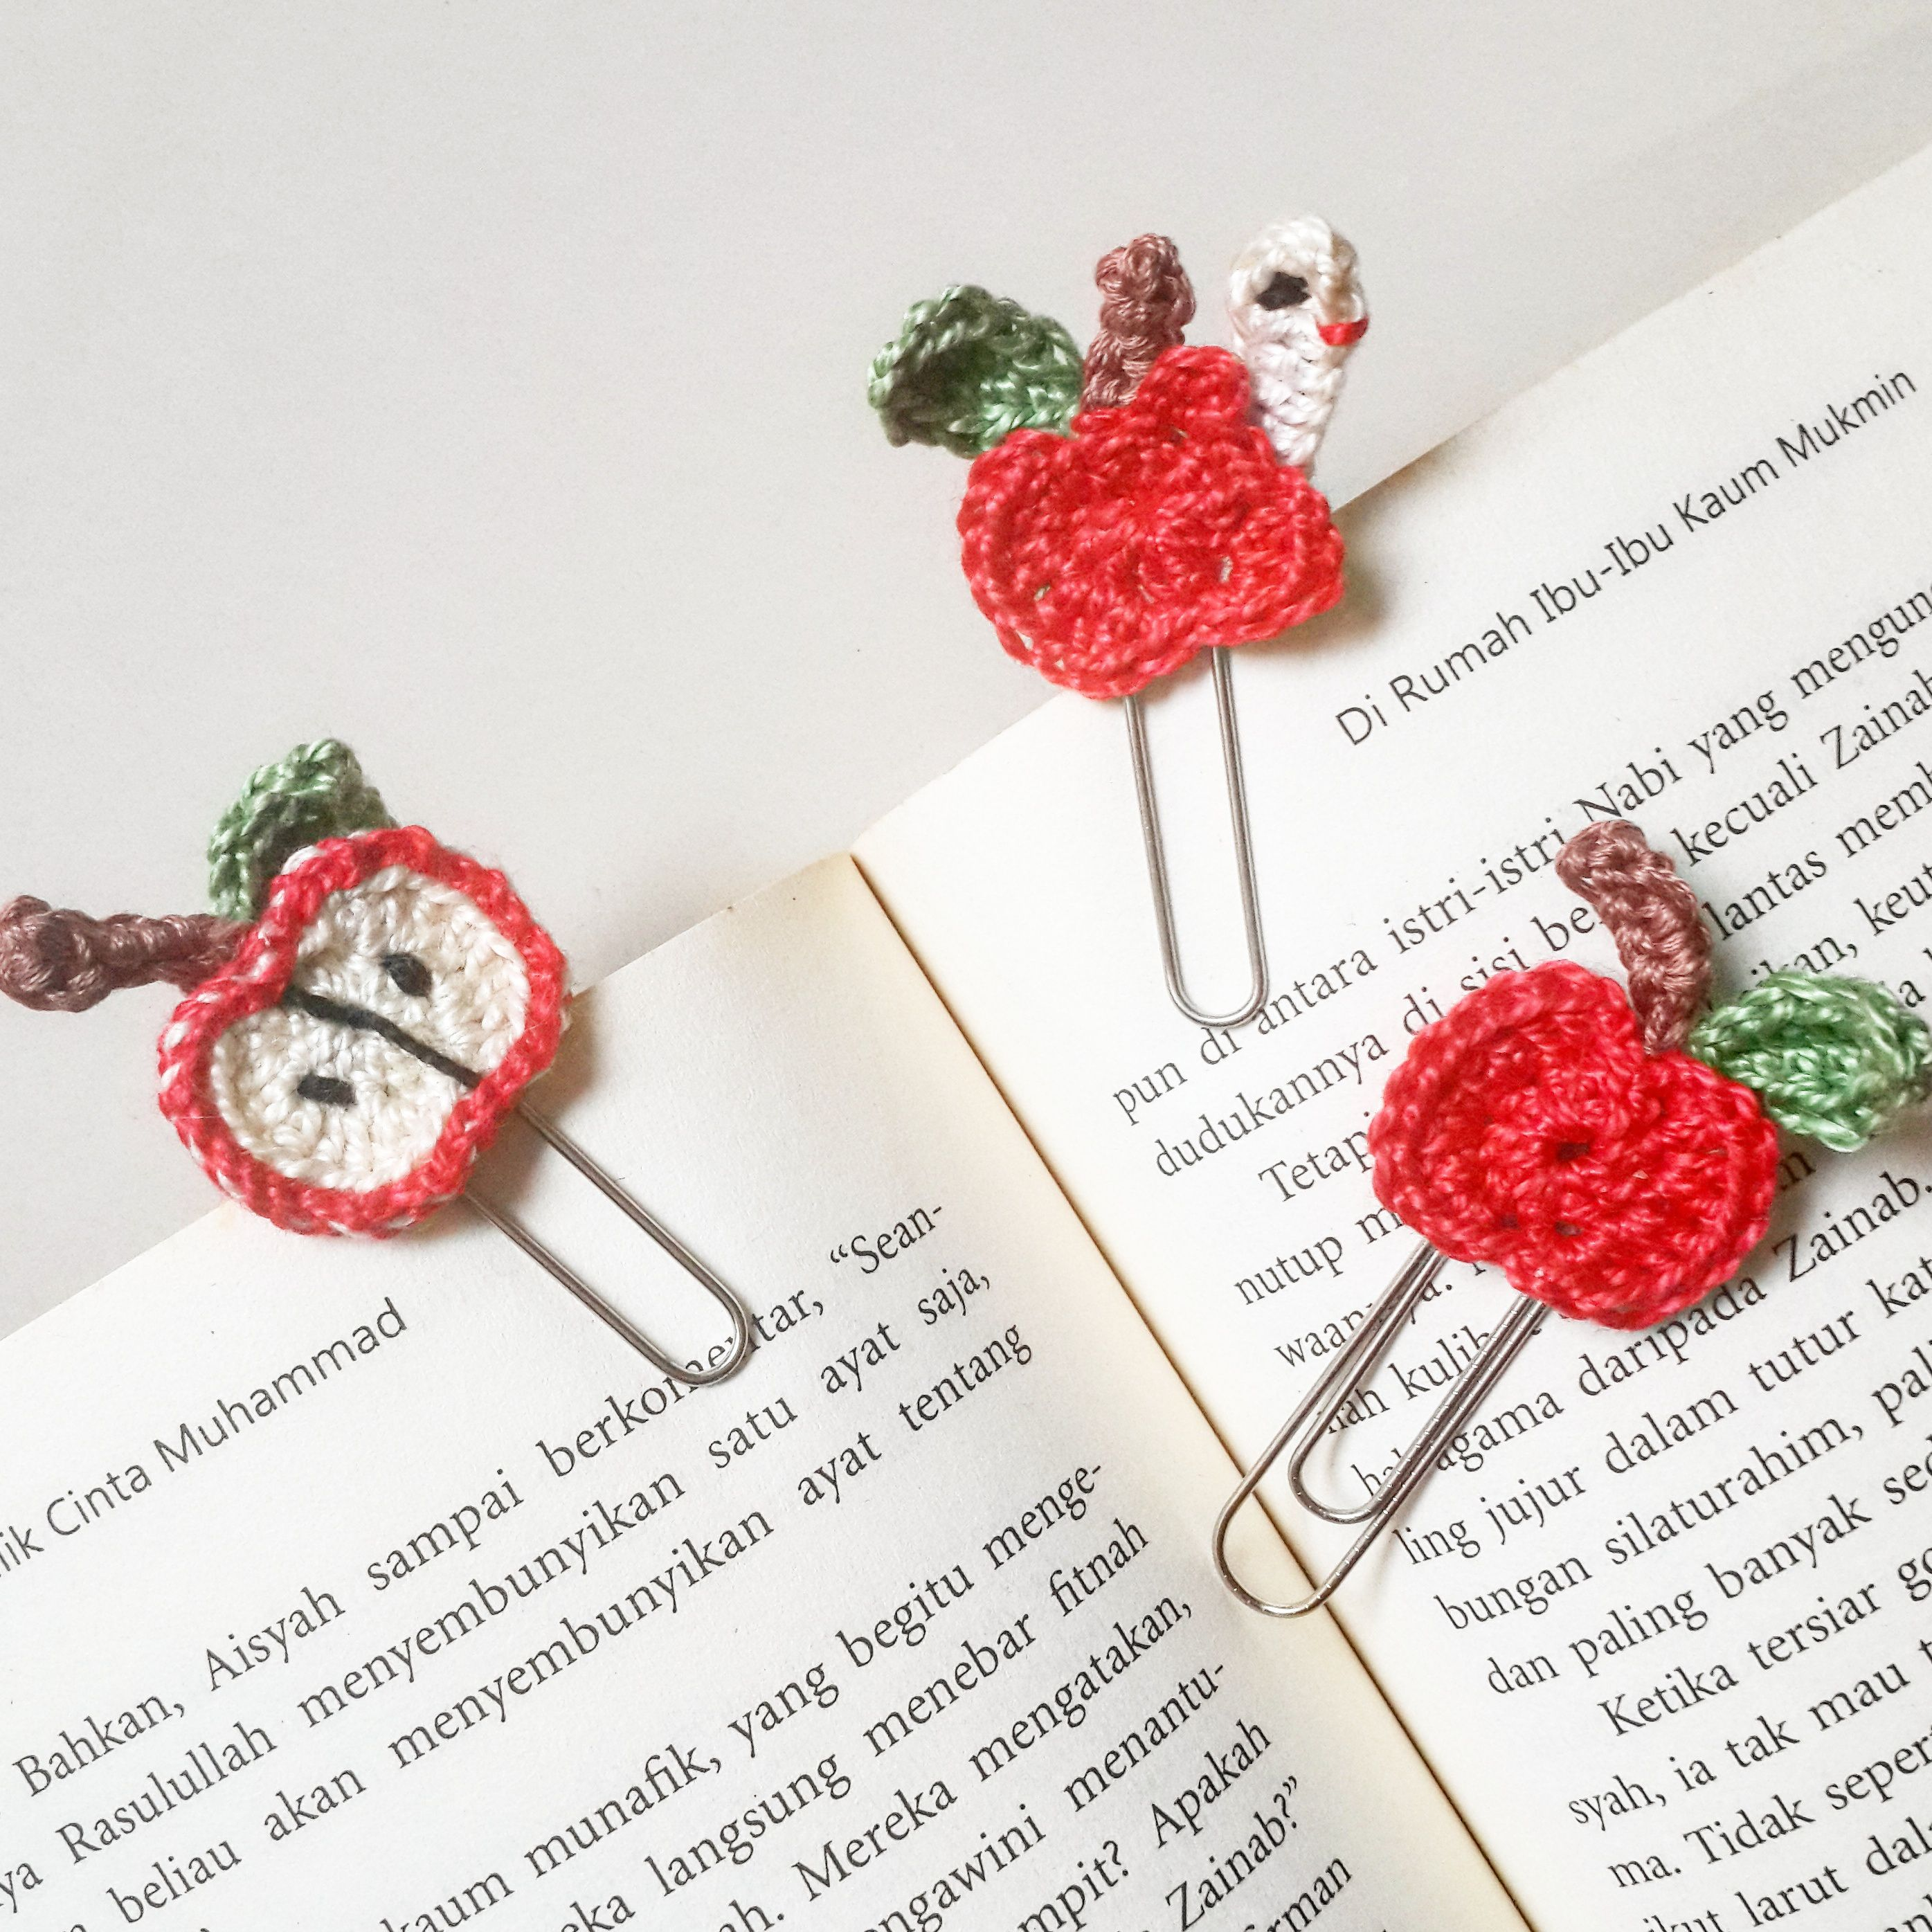 Crochê Maçã Marcadores - / Crochet Apple Bookmarks - | Manualidades ...